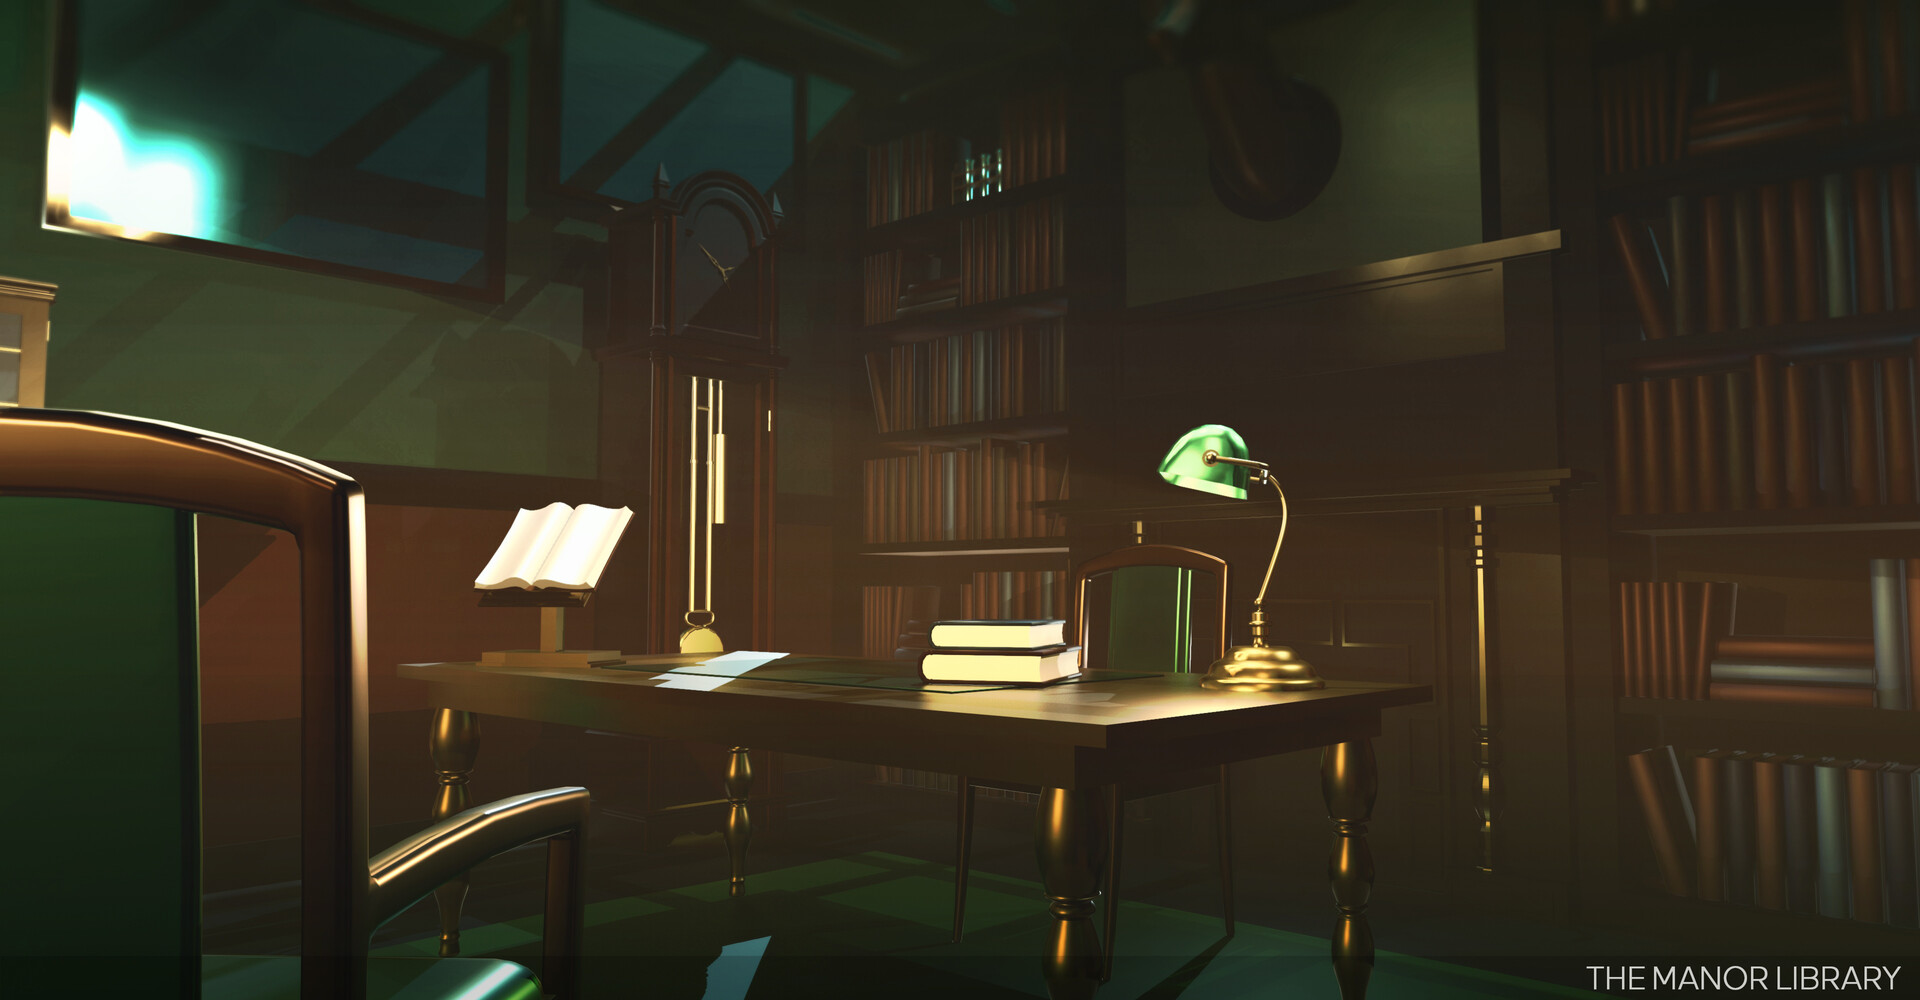 The_Manor_Library_Render_05